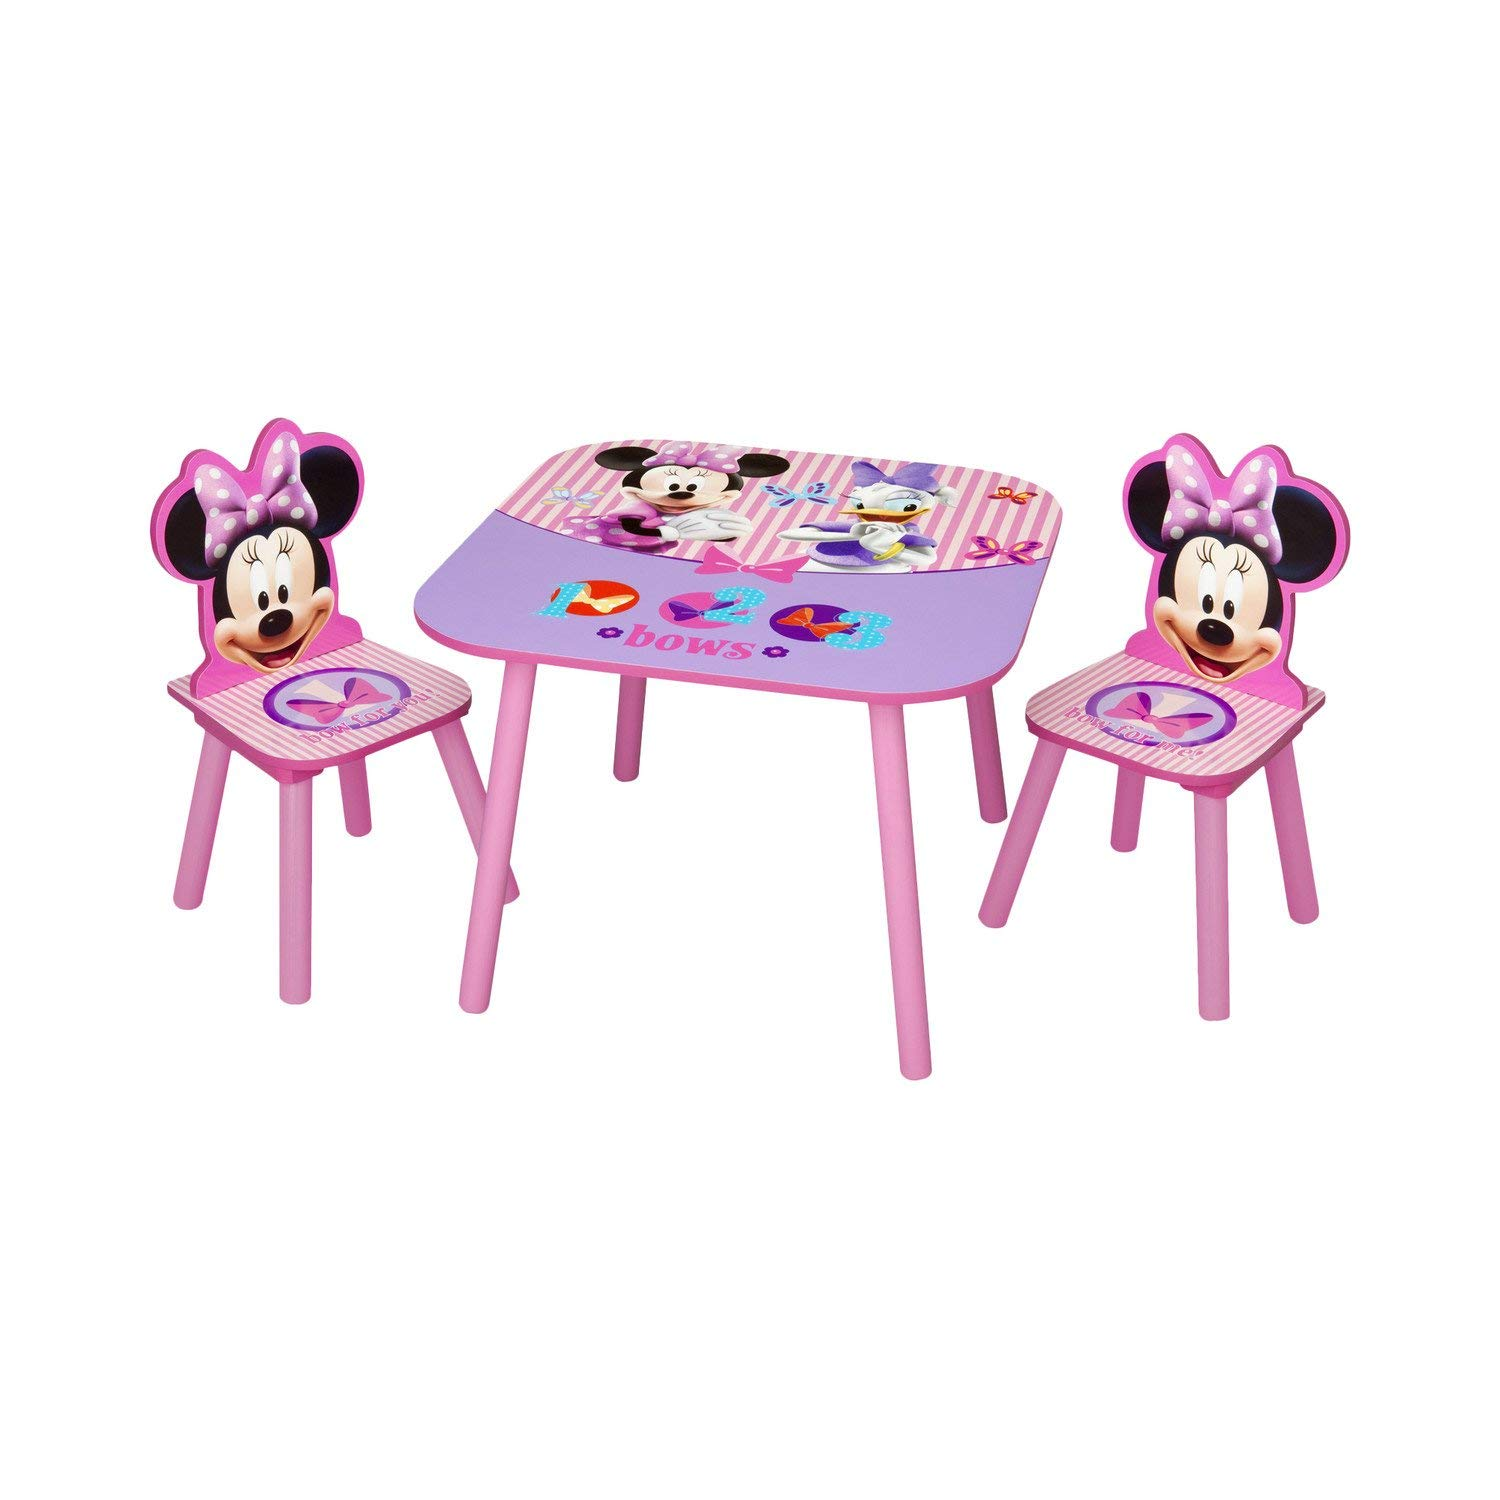 Kids Table And Chair Set Minnie Mouse Kids 3 Piece Non-Toxic And Safe Eco-Friendly Design 26.46 lbs*